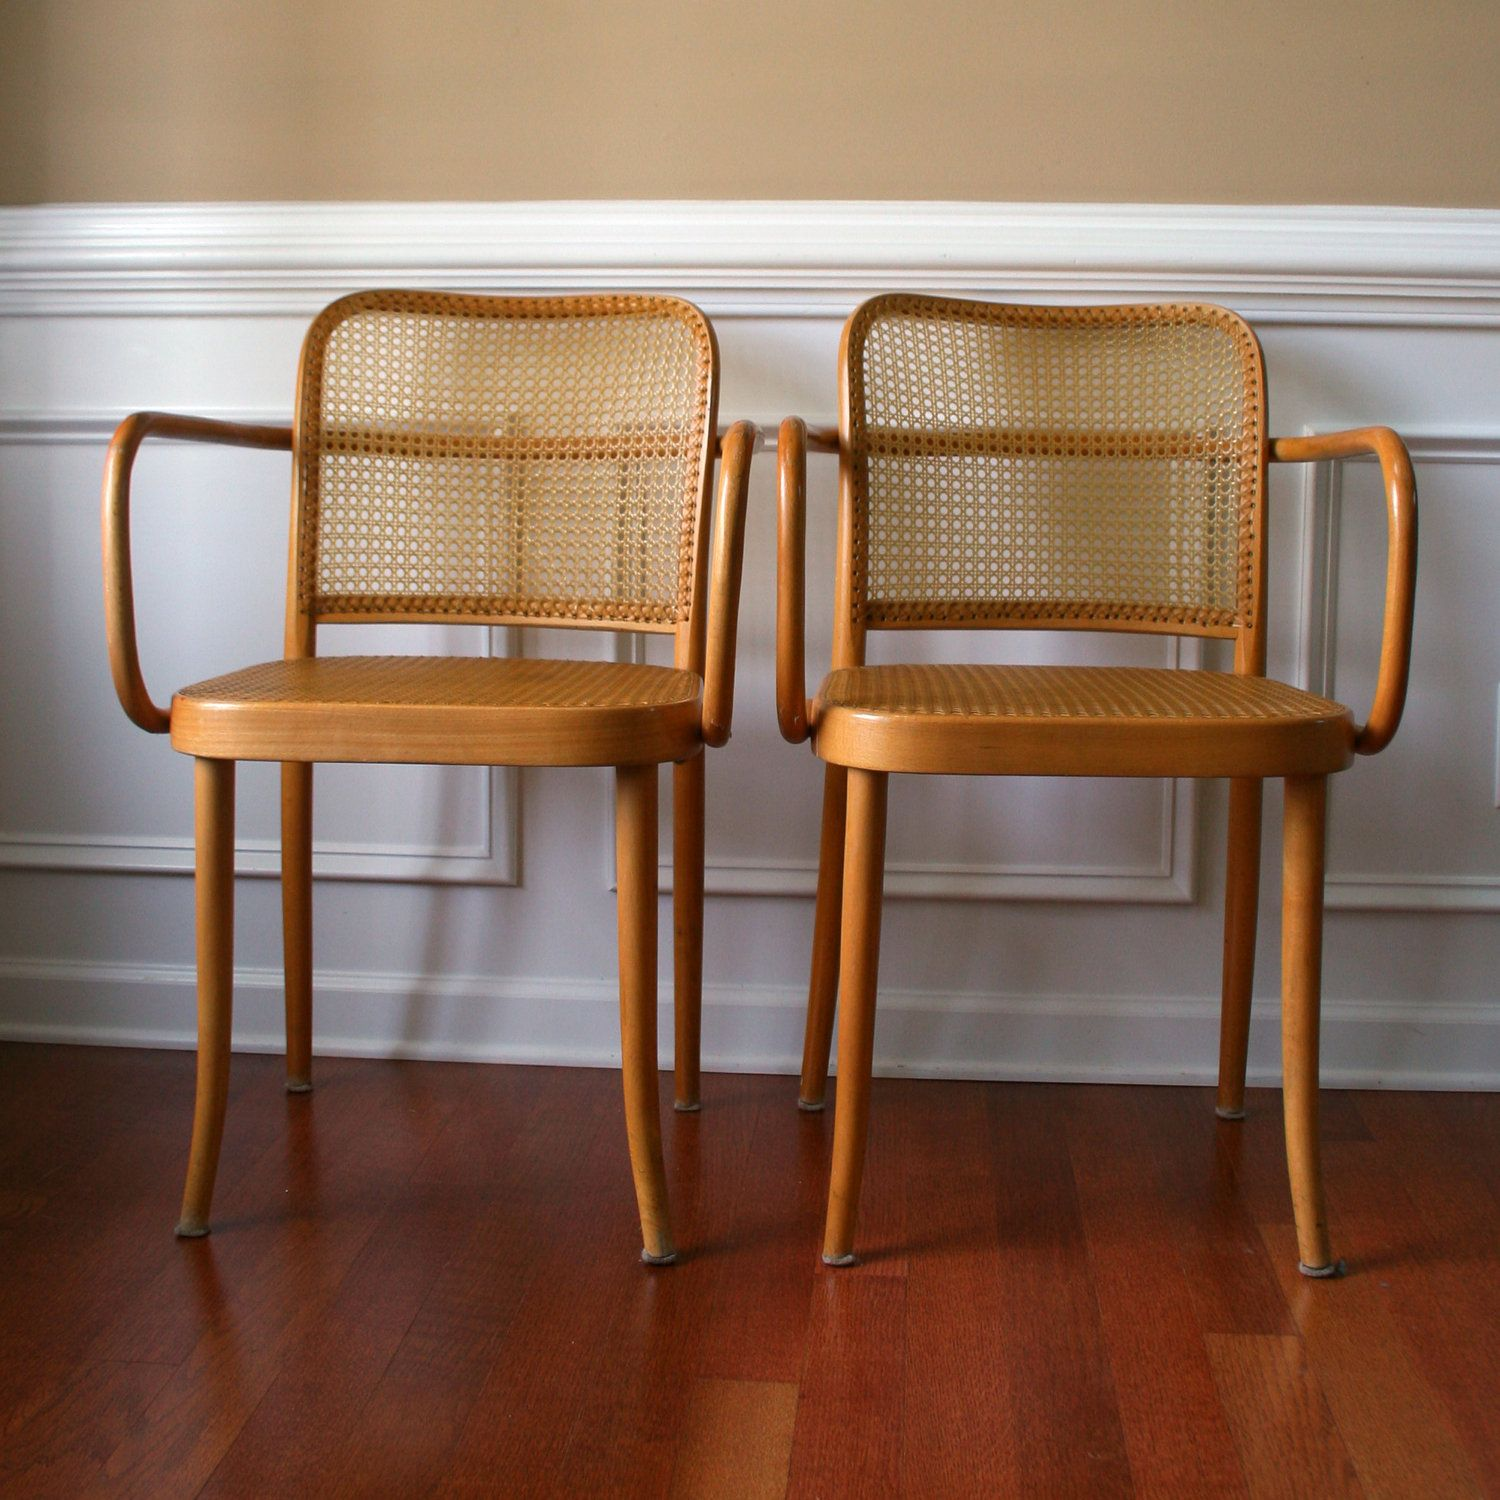 thonet bentwood chairs prague chair stendig chairs cane chairs mad men